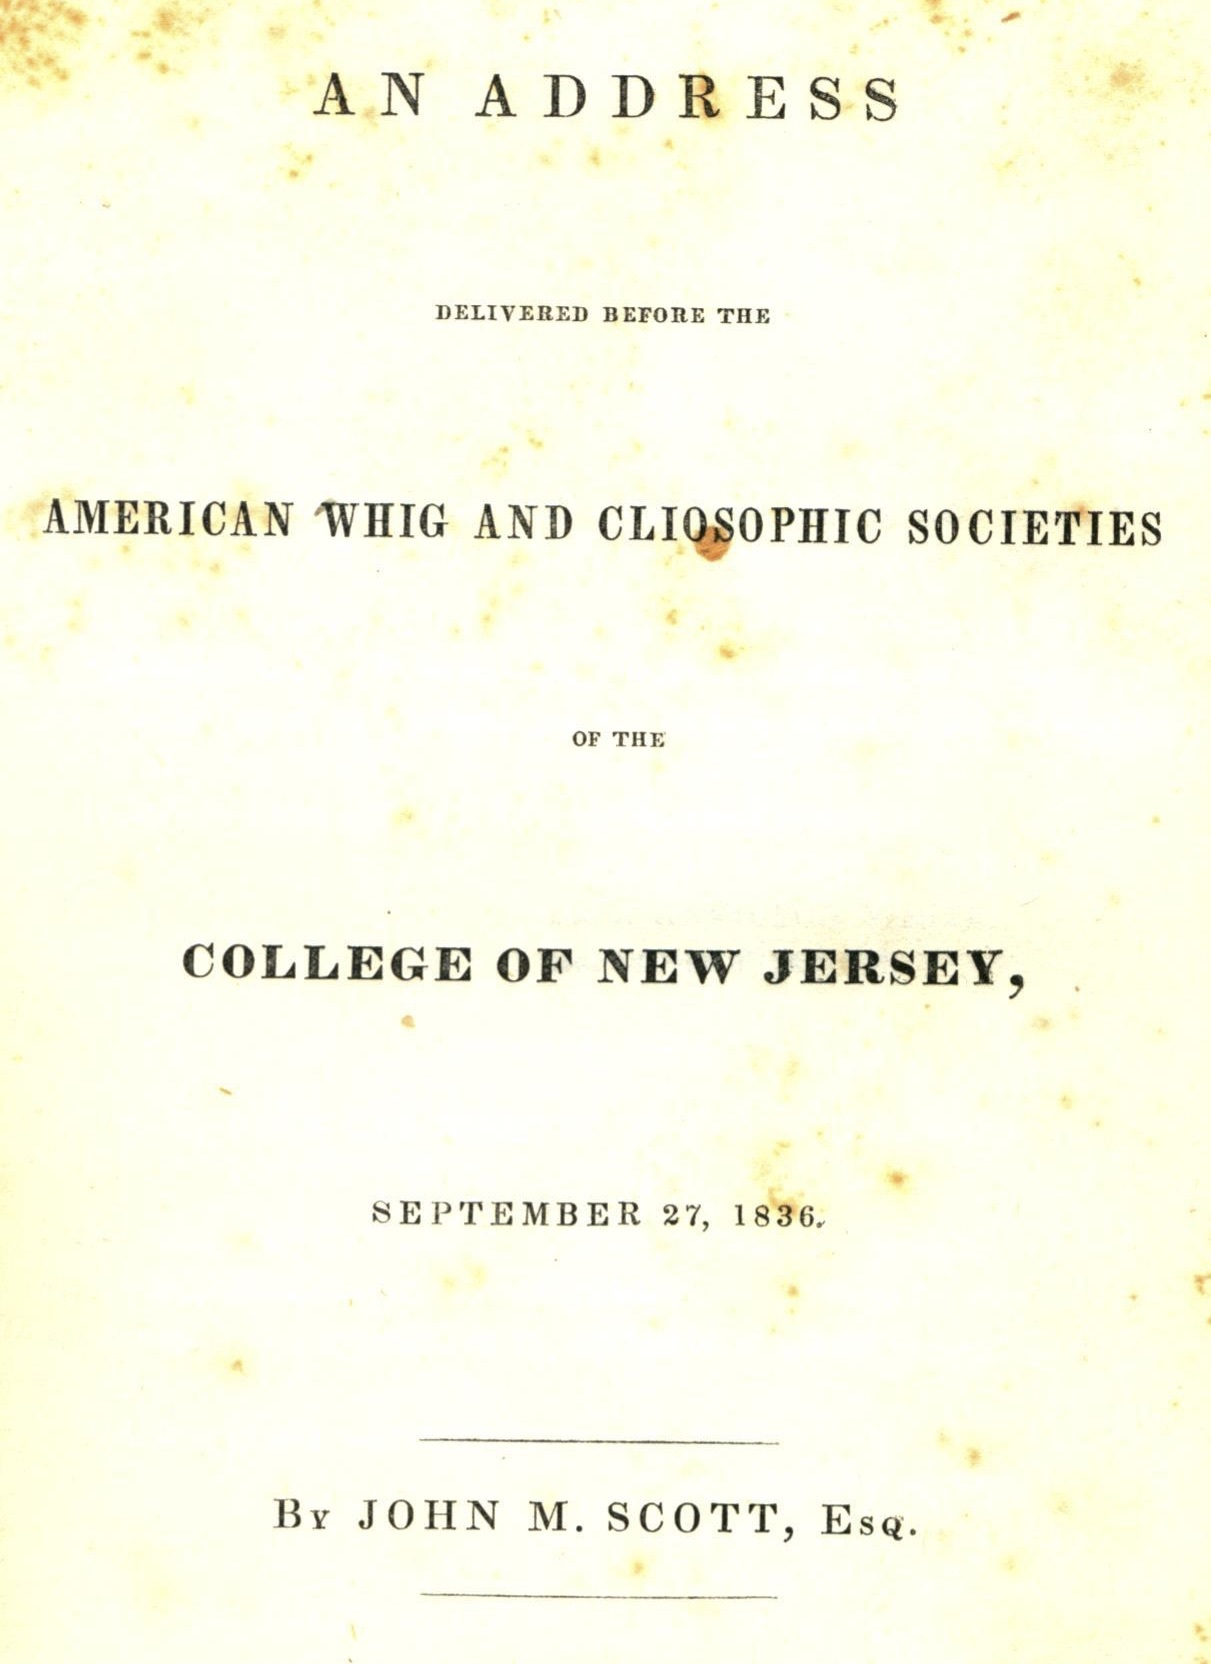 """An Address Delivered before the American Whig and Cliosophic Societies"""